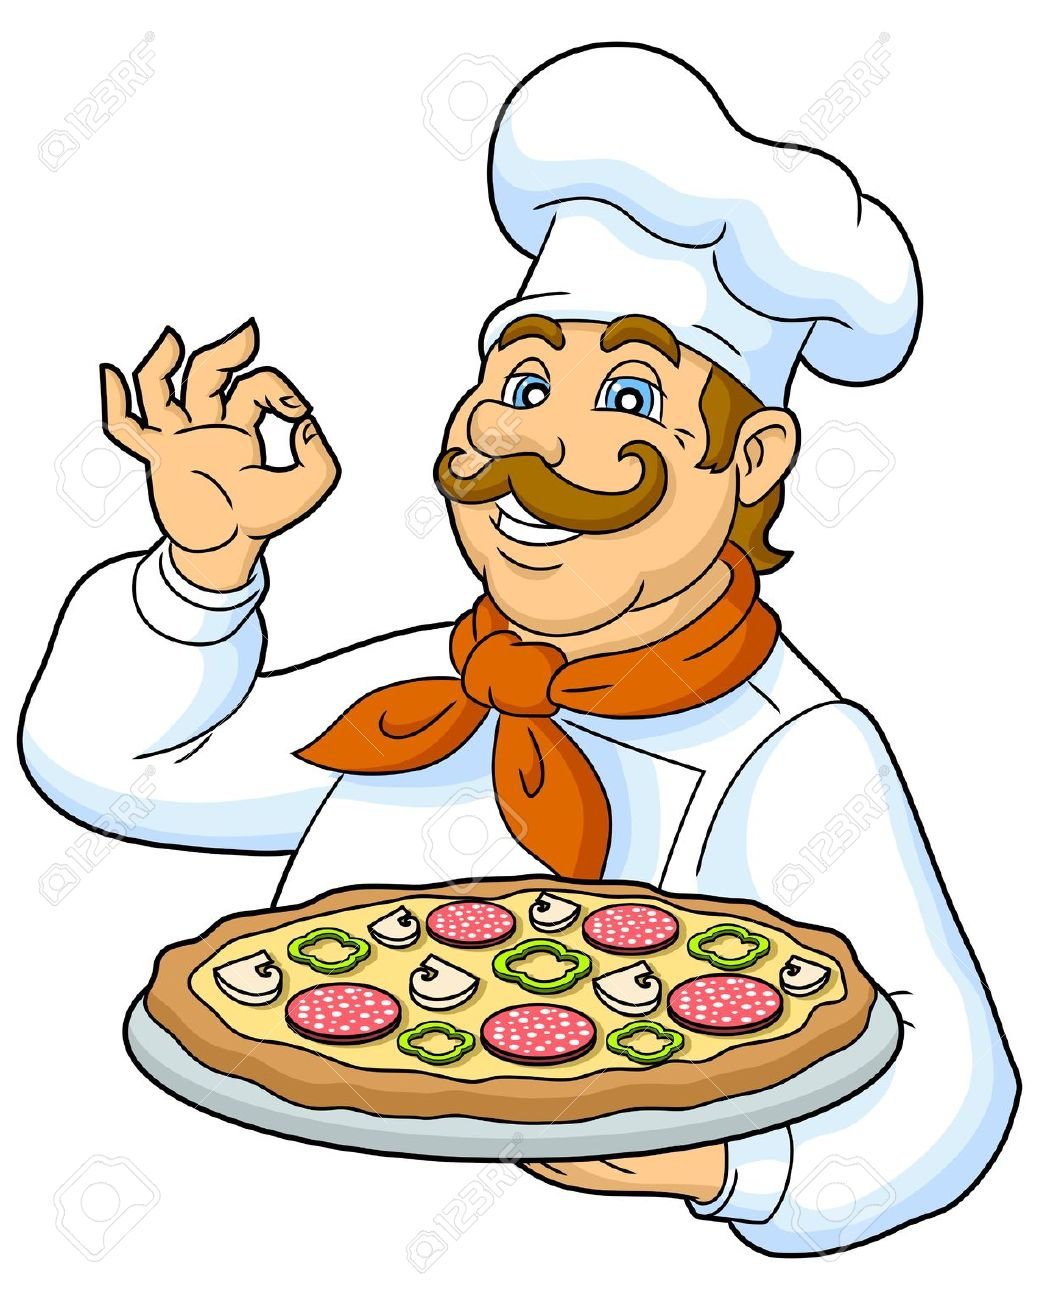 Pizza baker clipart 20 free Cliparts  Download images on